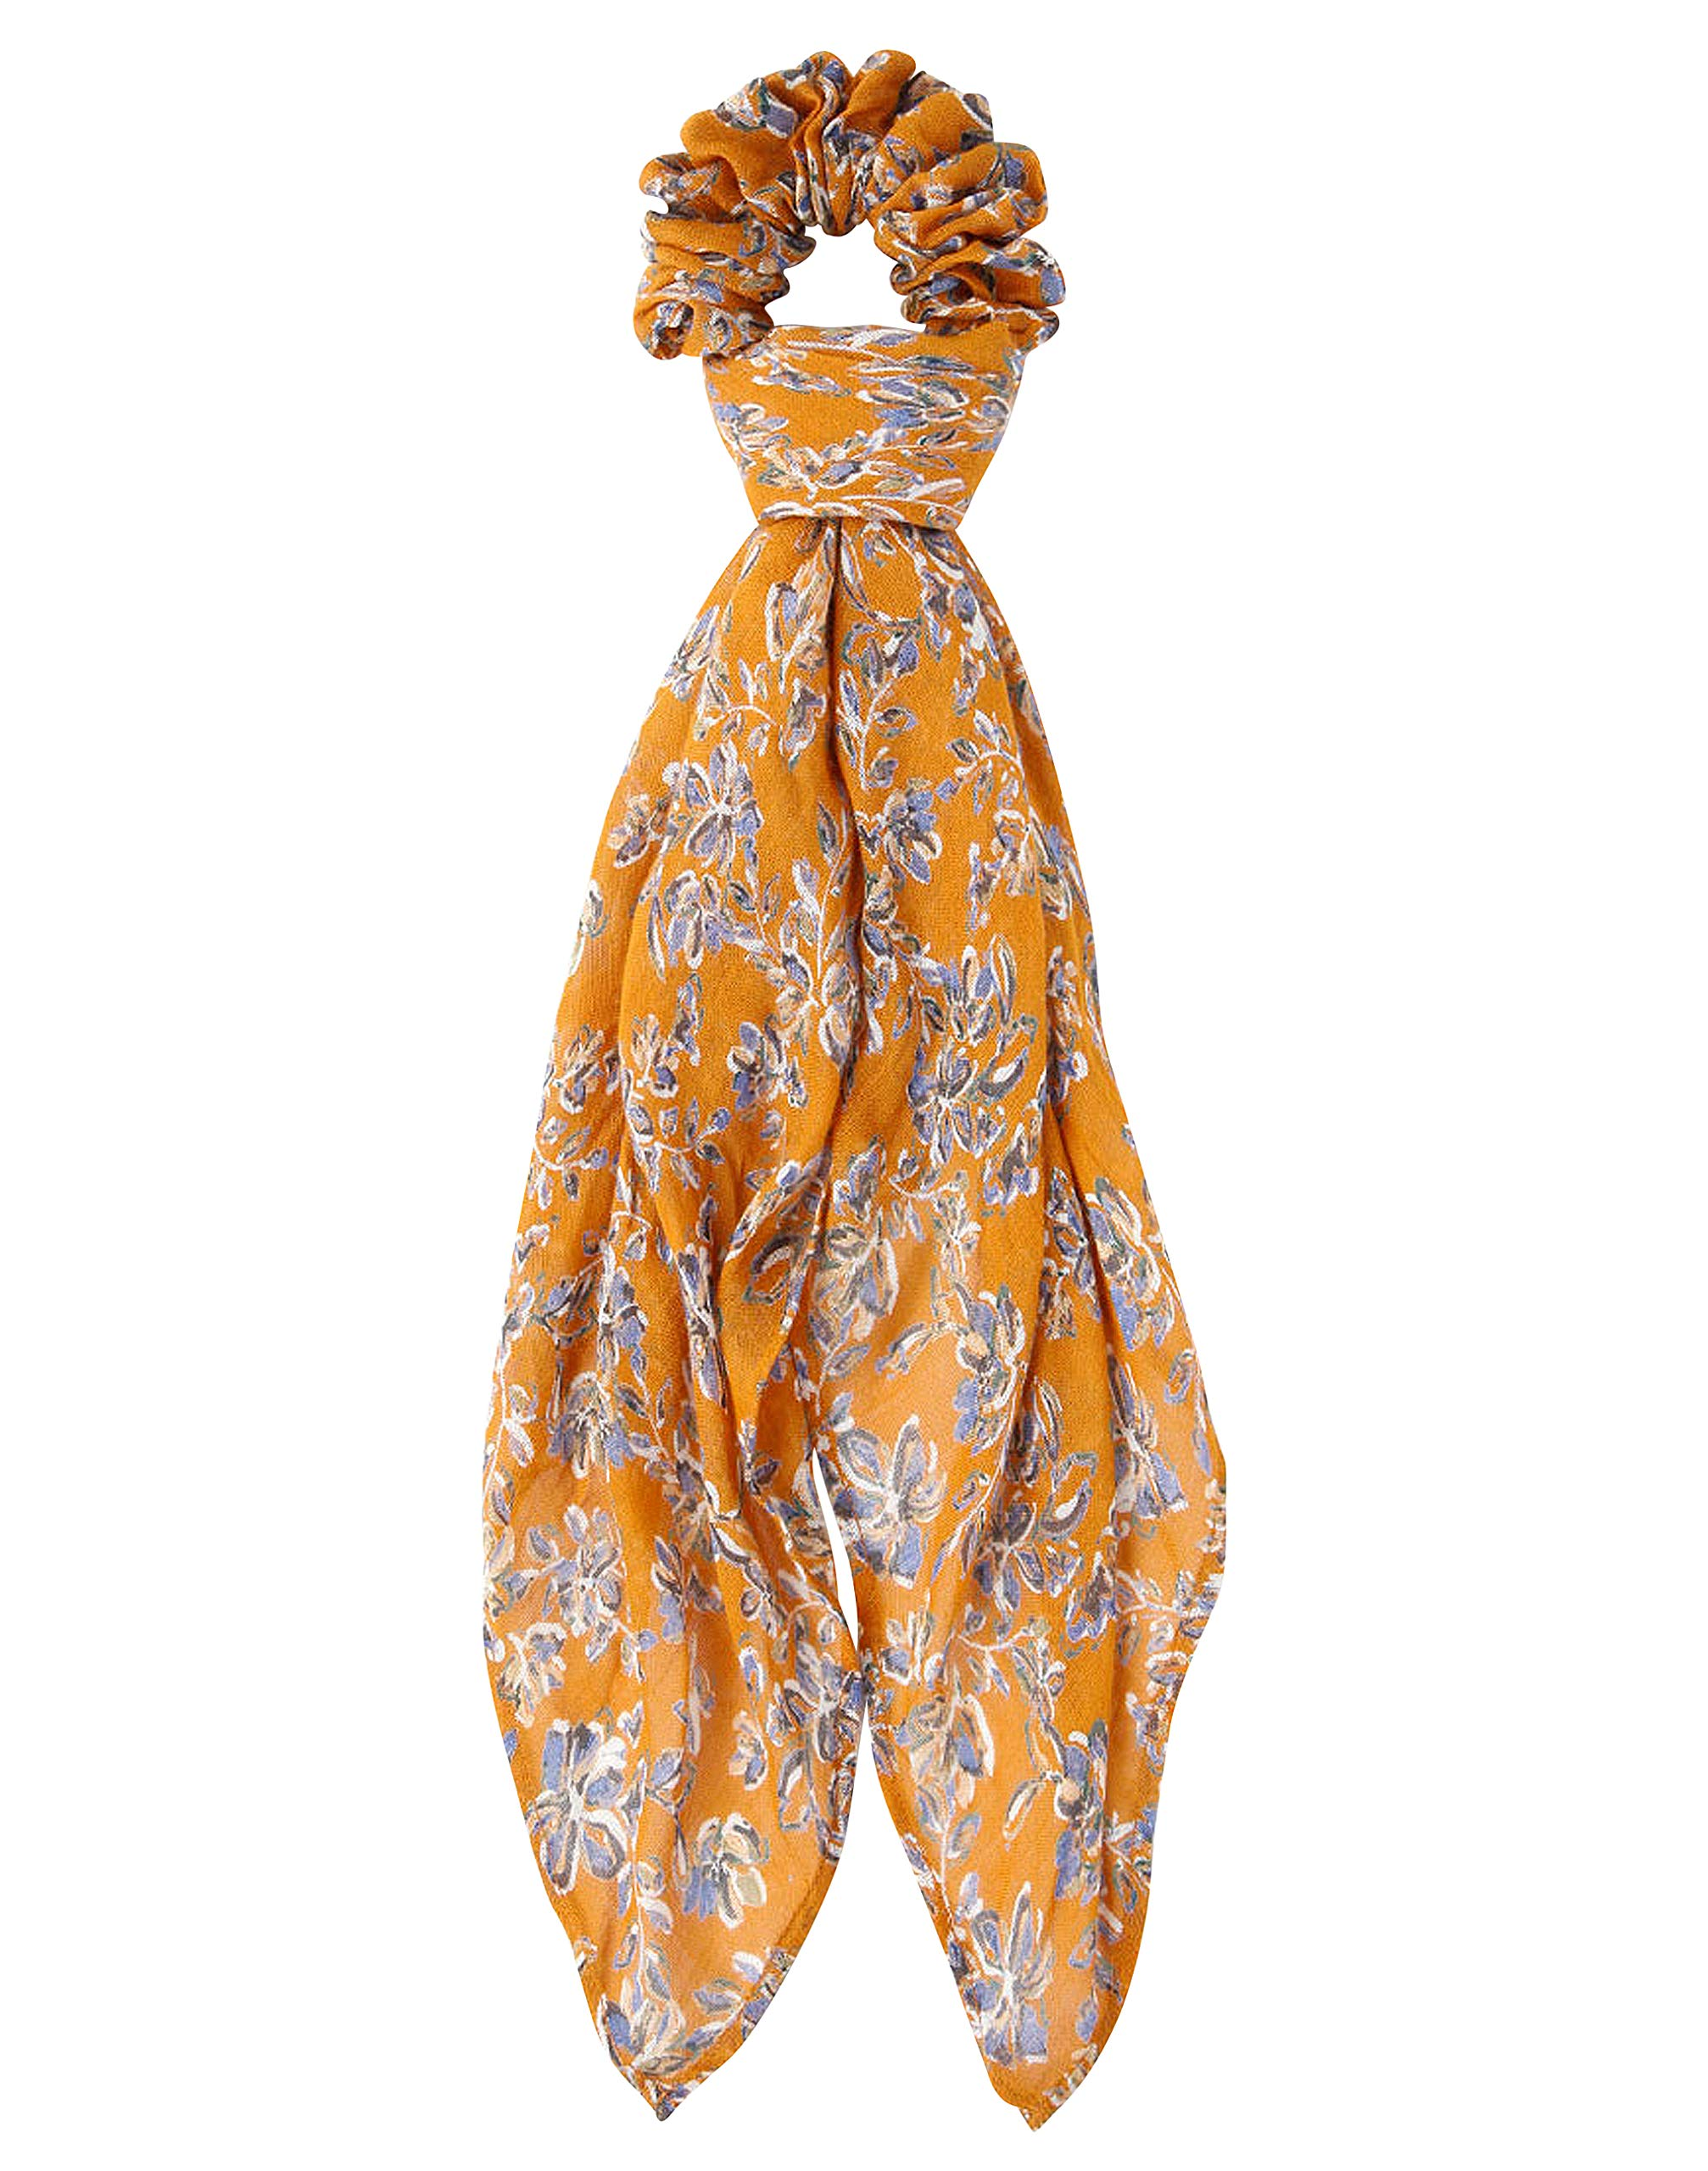 Chan Luu Painted Floral 2 in 1 Hair Scrunchie Bandana in Wheat by Chan Luu